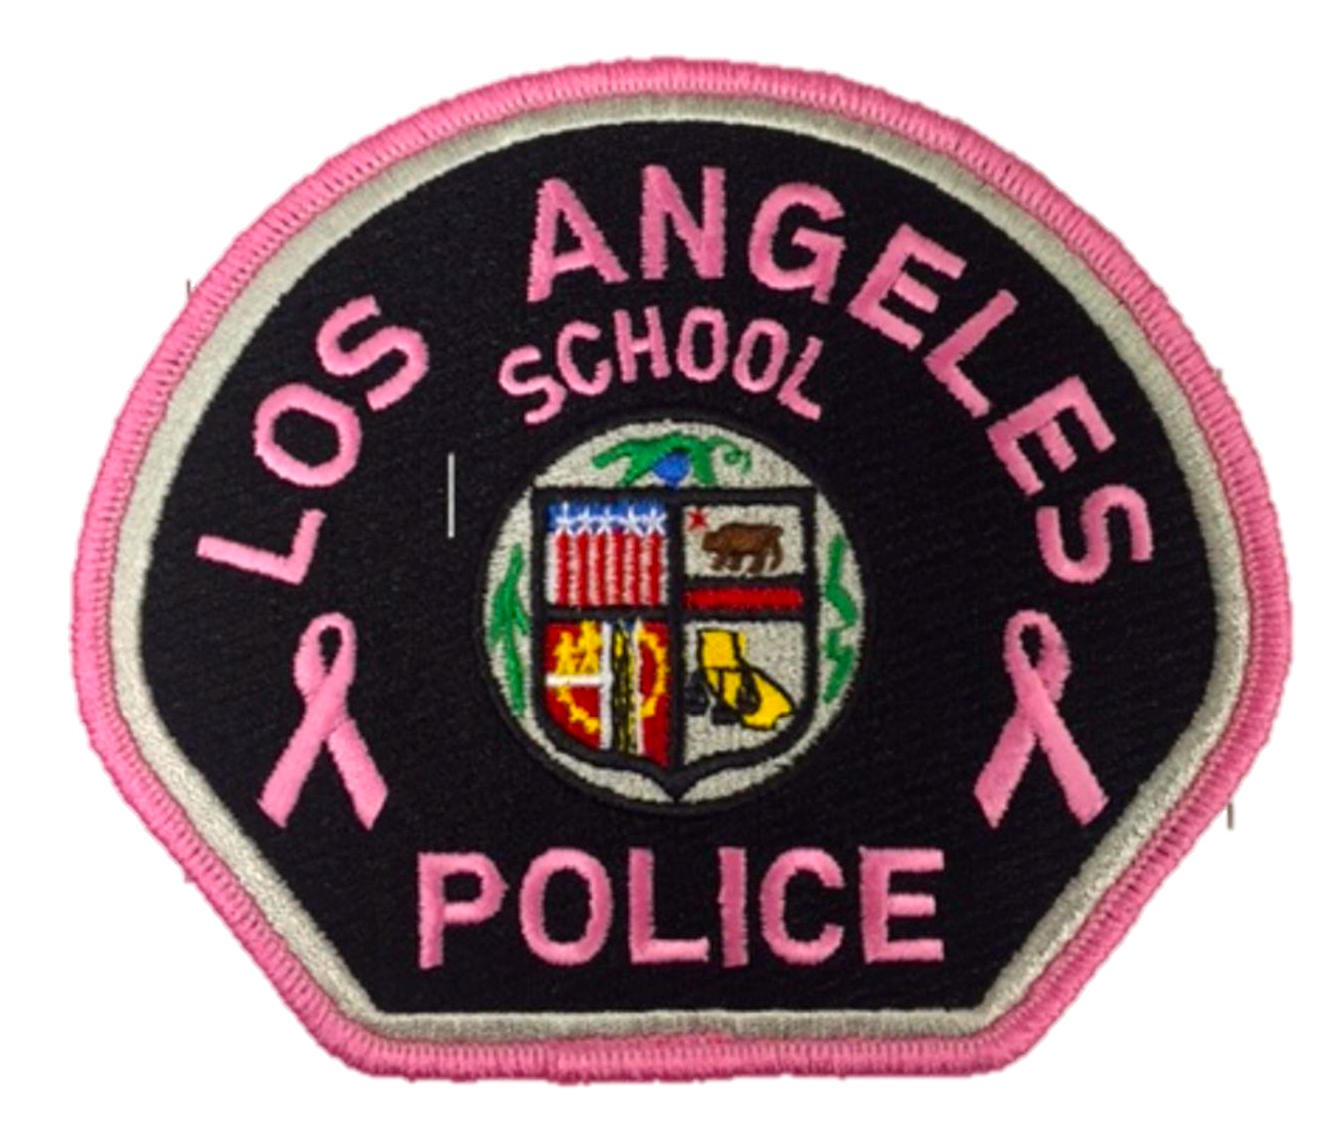 LAUSD Patch-page-001.jpg